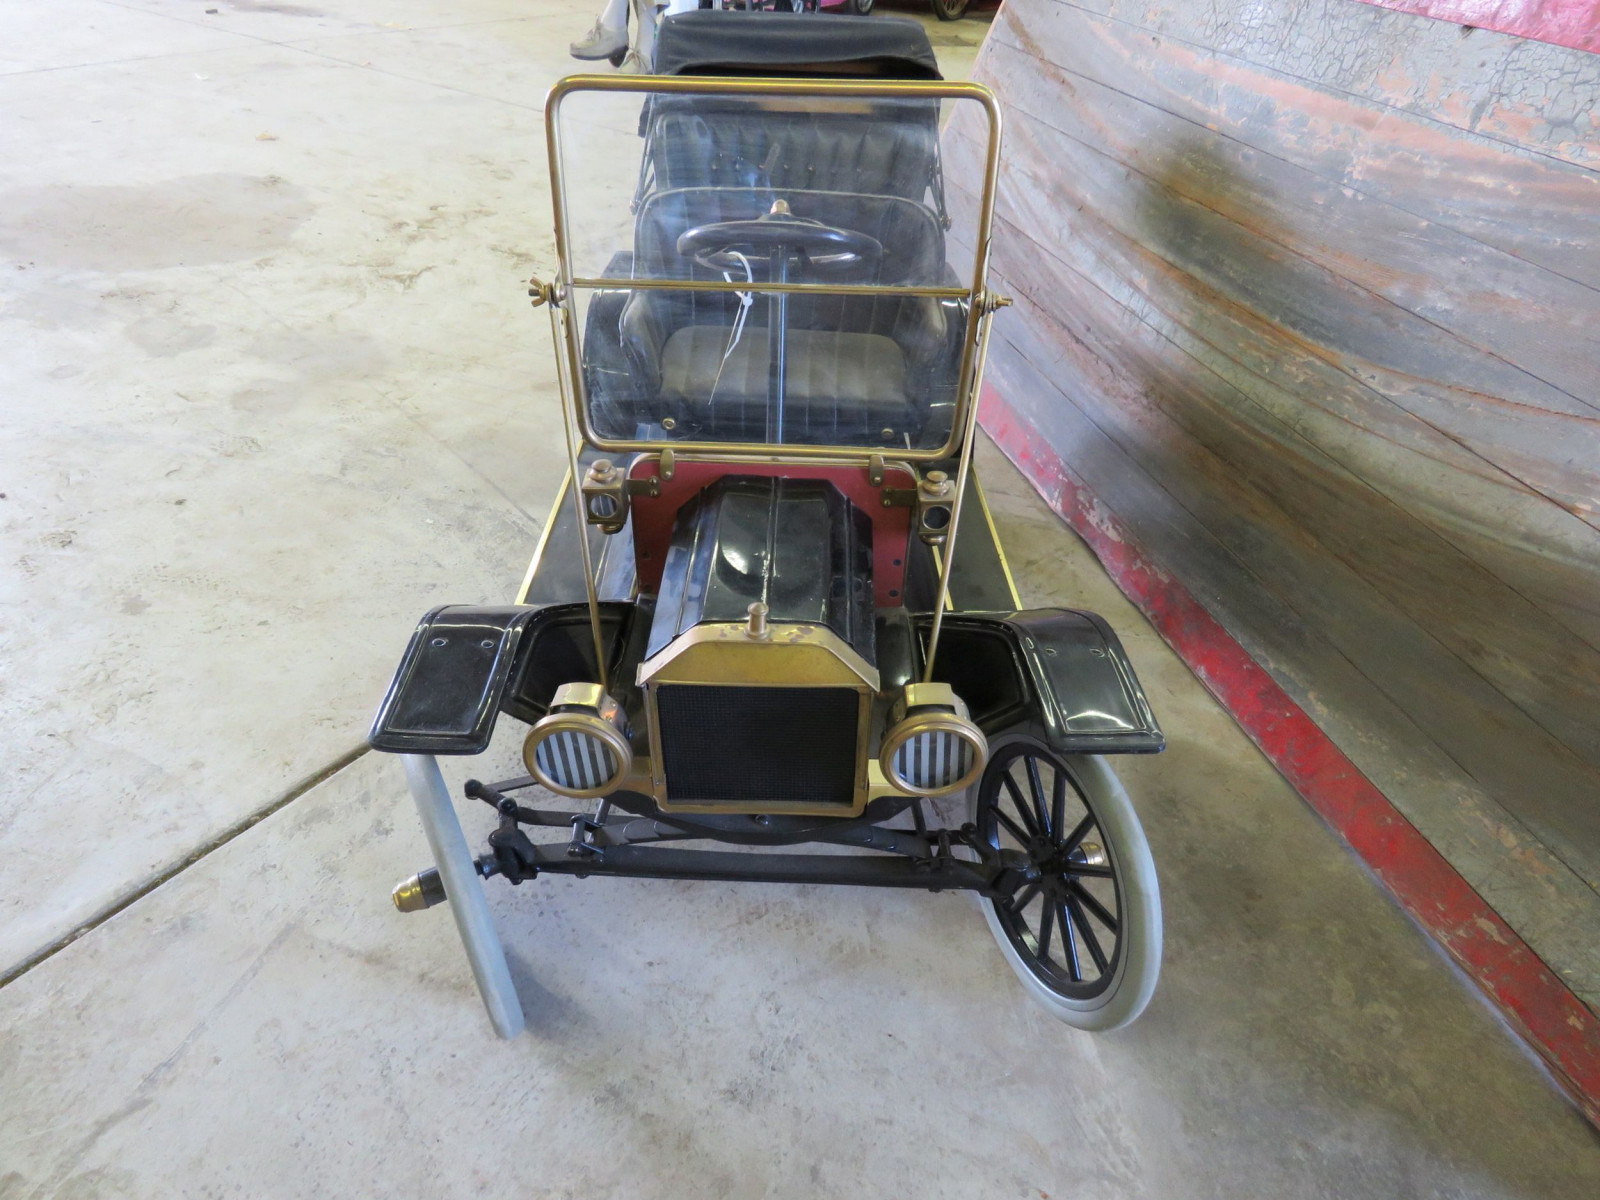 Model T Touring Car Pedal Car - Image 2